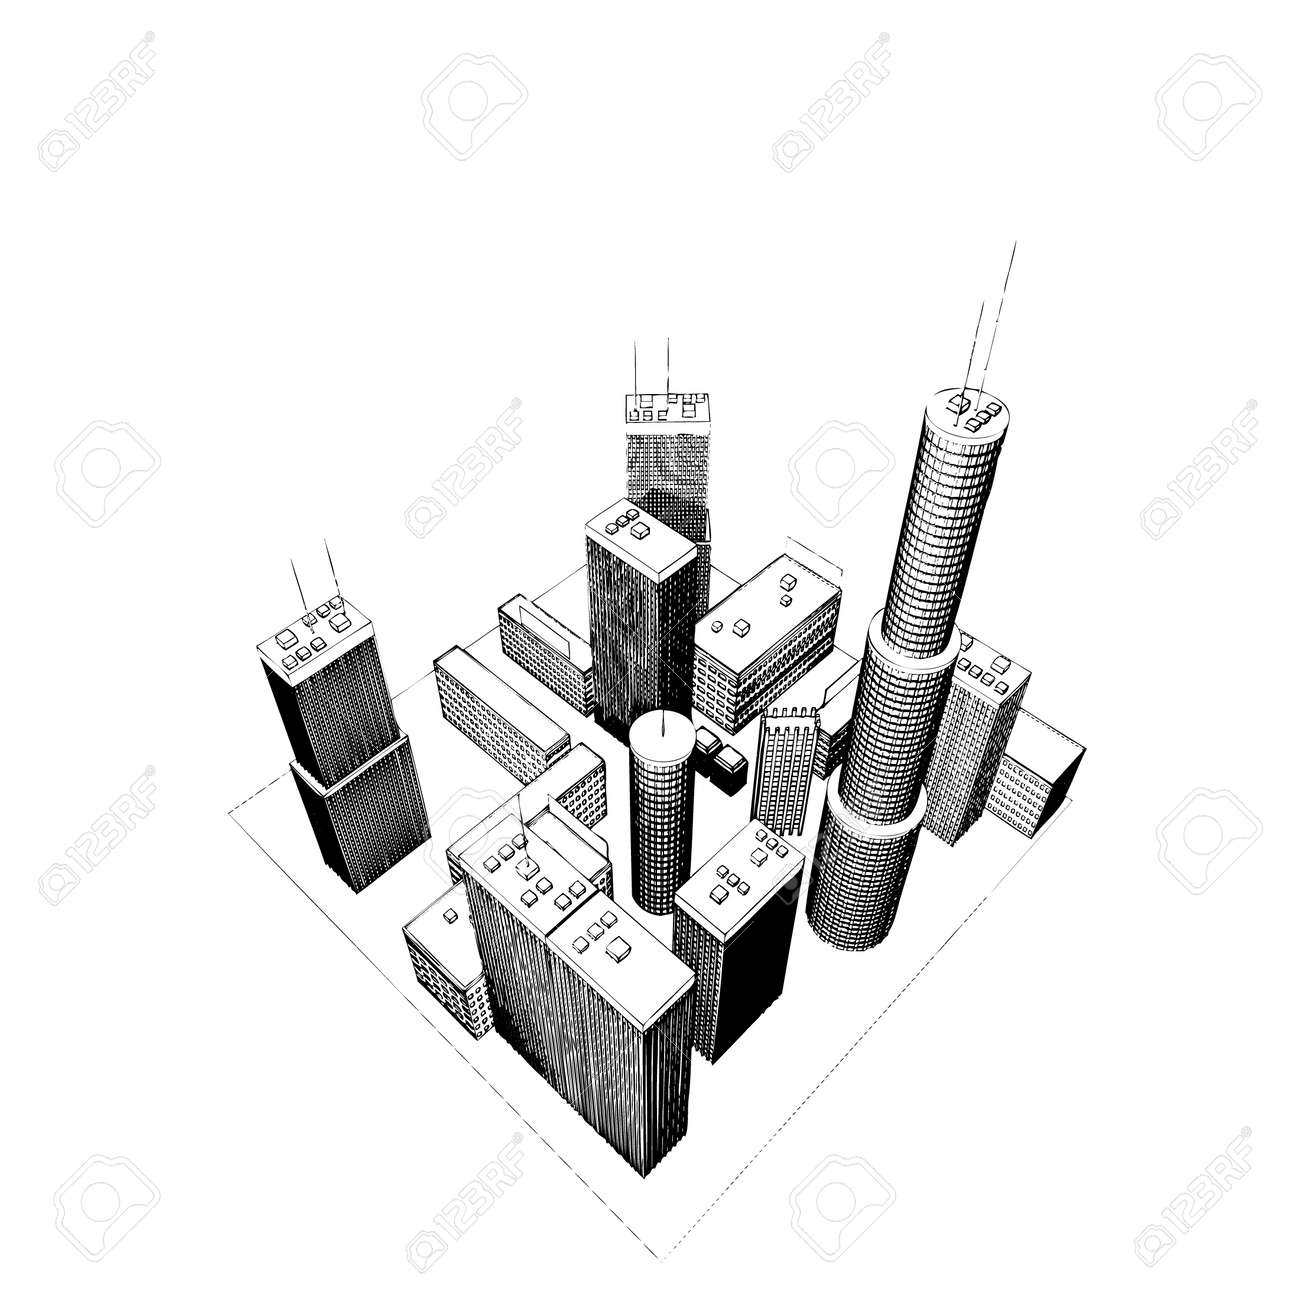 isolated big skyscrapers on white background #1 (vector illustration) Stock Vector - 1697115